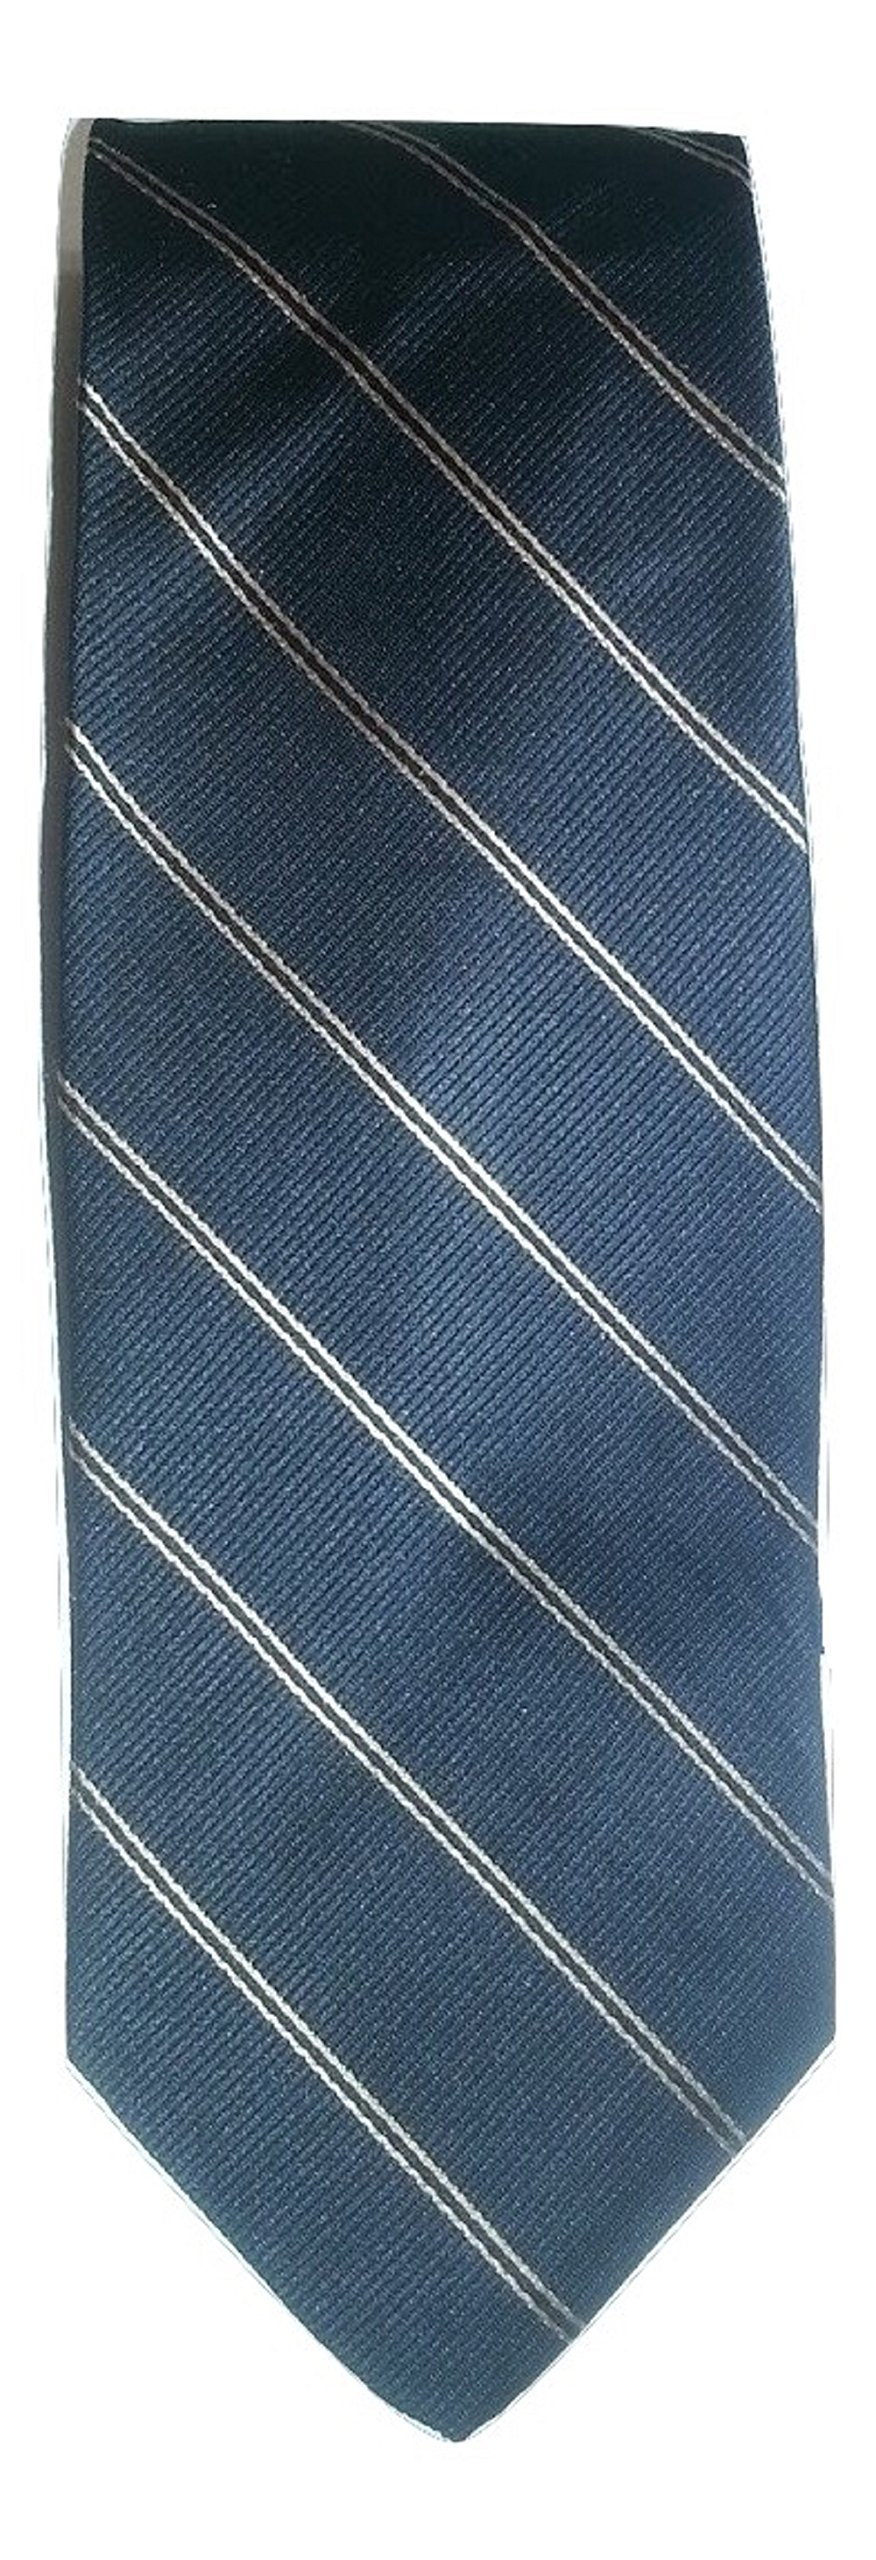 Austin Reed Men S Designer Silk Tie Buy Online In Isle Of Man At Isleofman Desertcart Com Productid 21865417